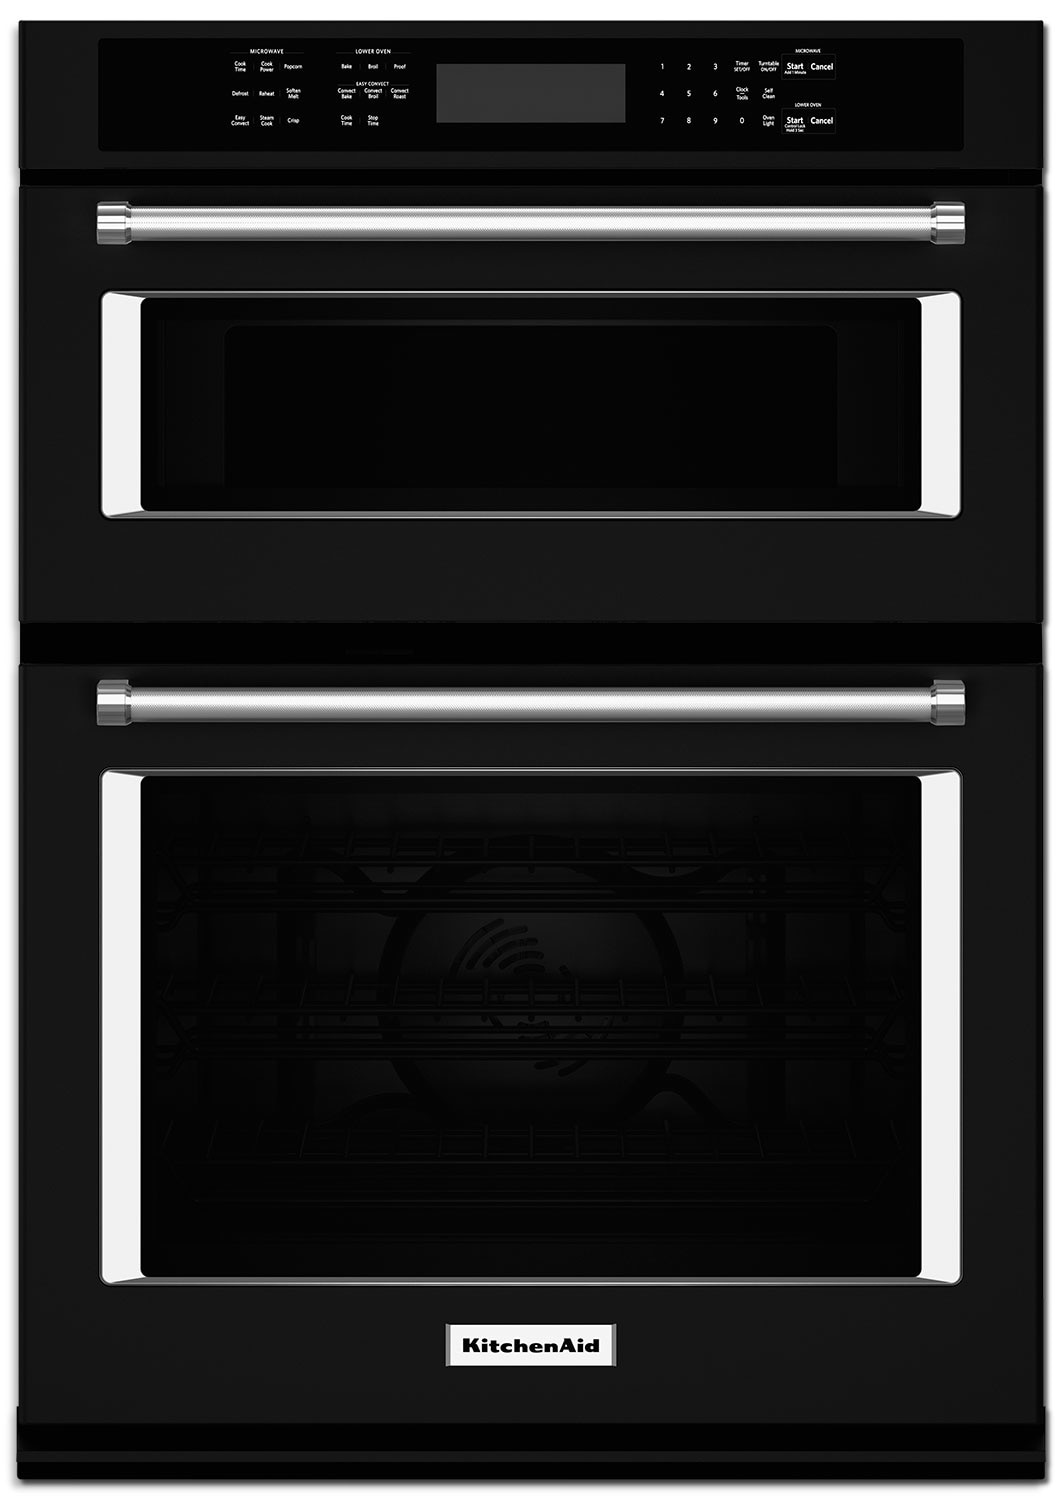 "KitchenAid 30"" Double Wall Oven with Microwave and Conventional Oven - Black"